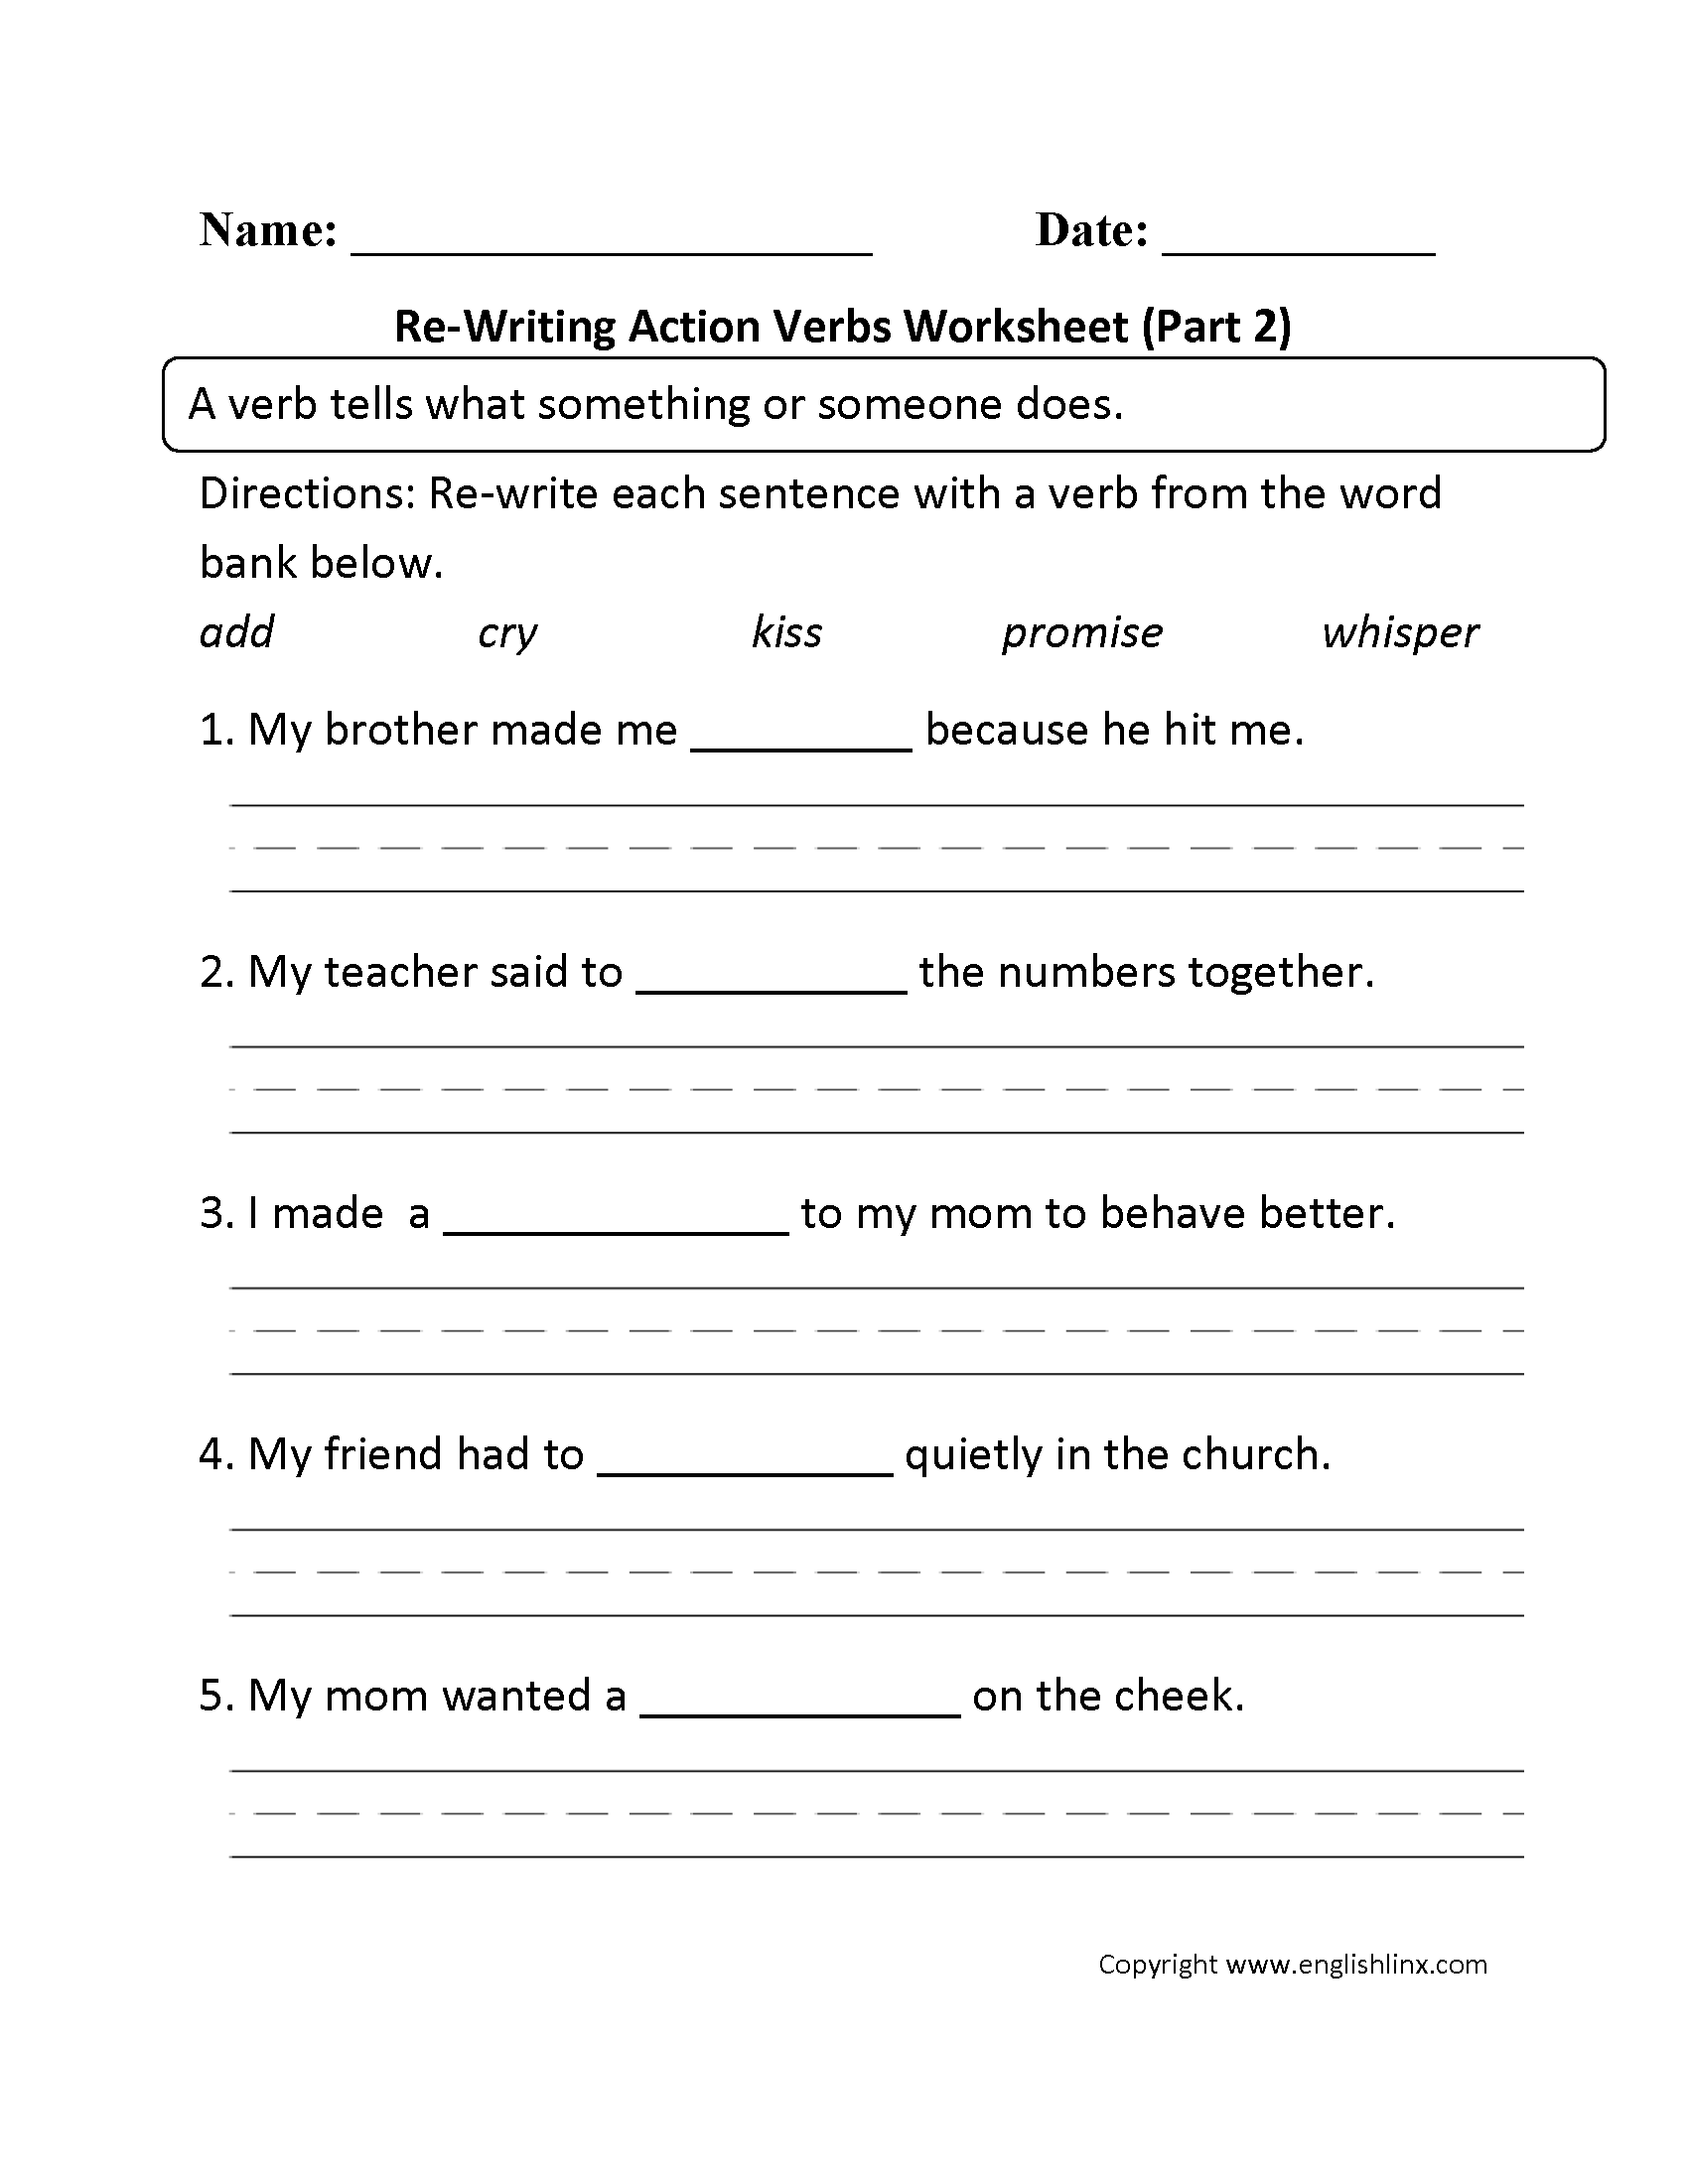 Worksheet On Subject Verb Agreement For Class 4